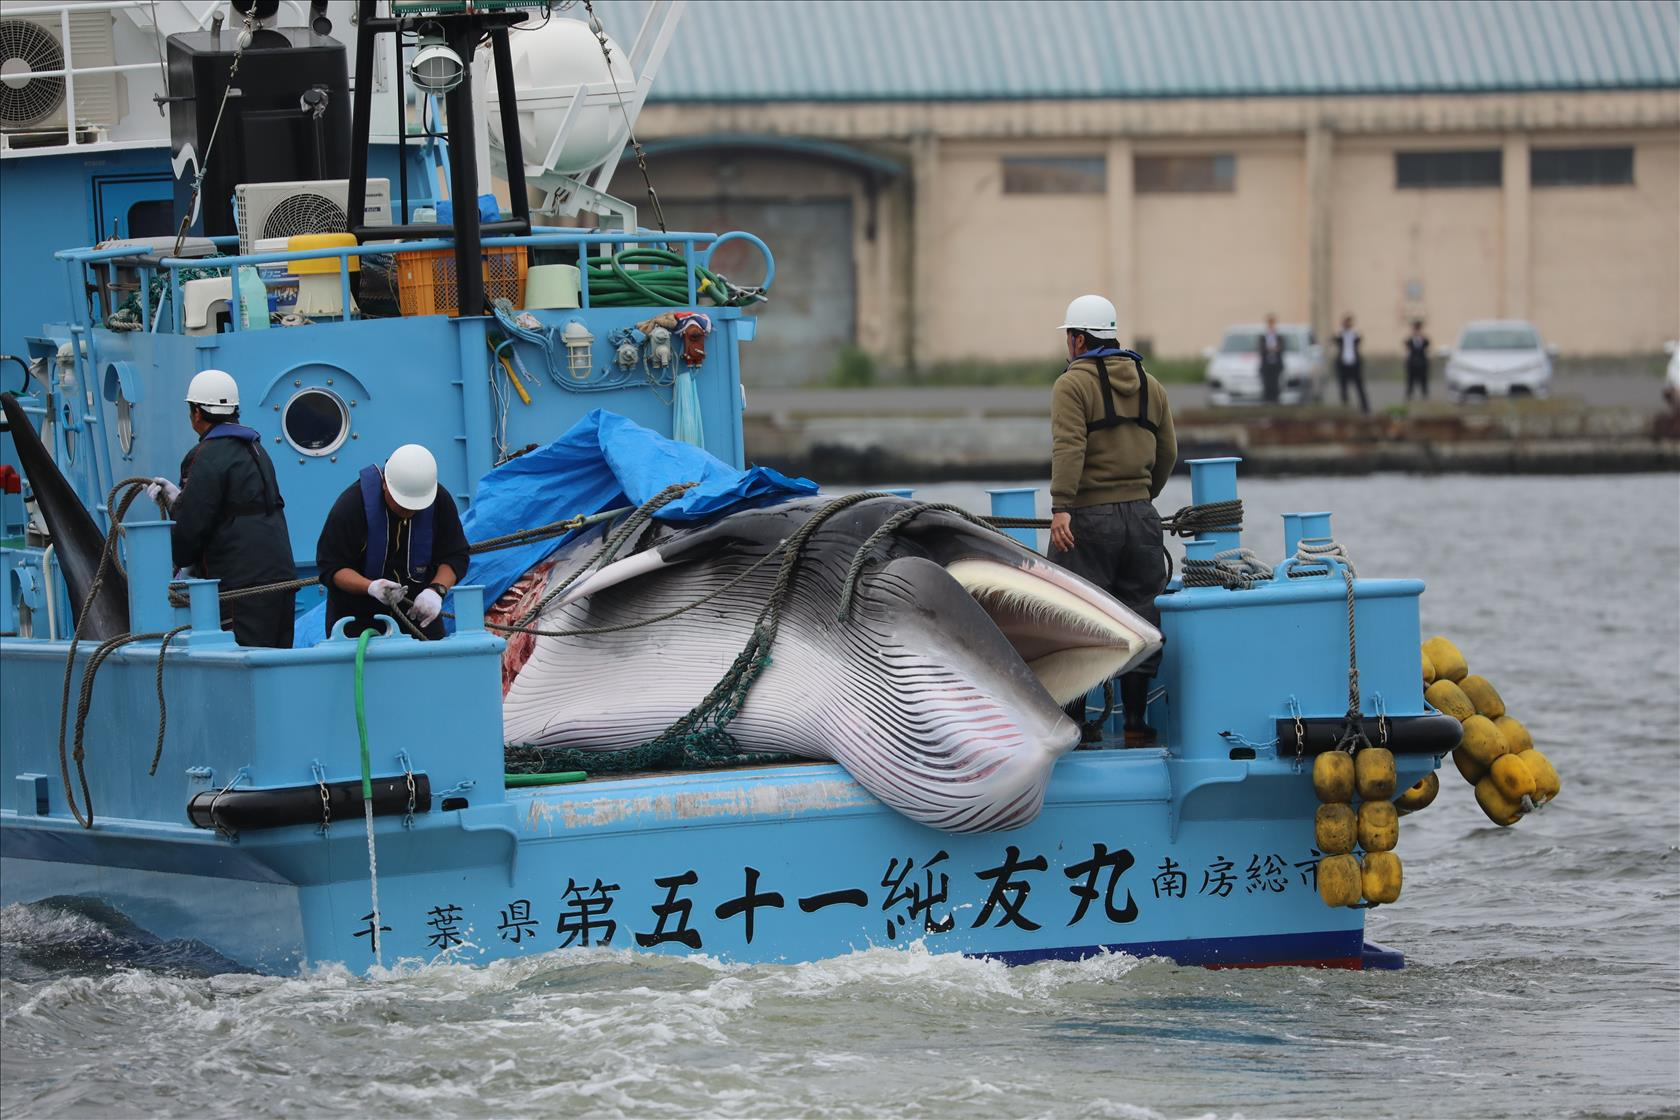 Featured image: Japan resumes commercial whaling – researchers on how the world should respond